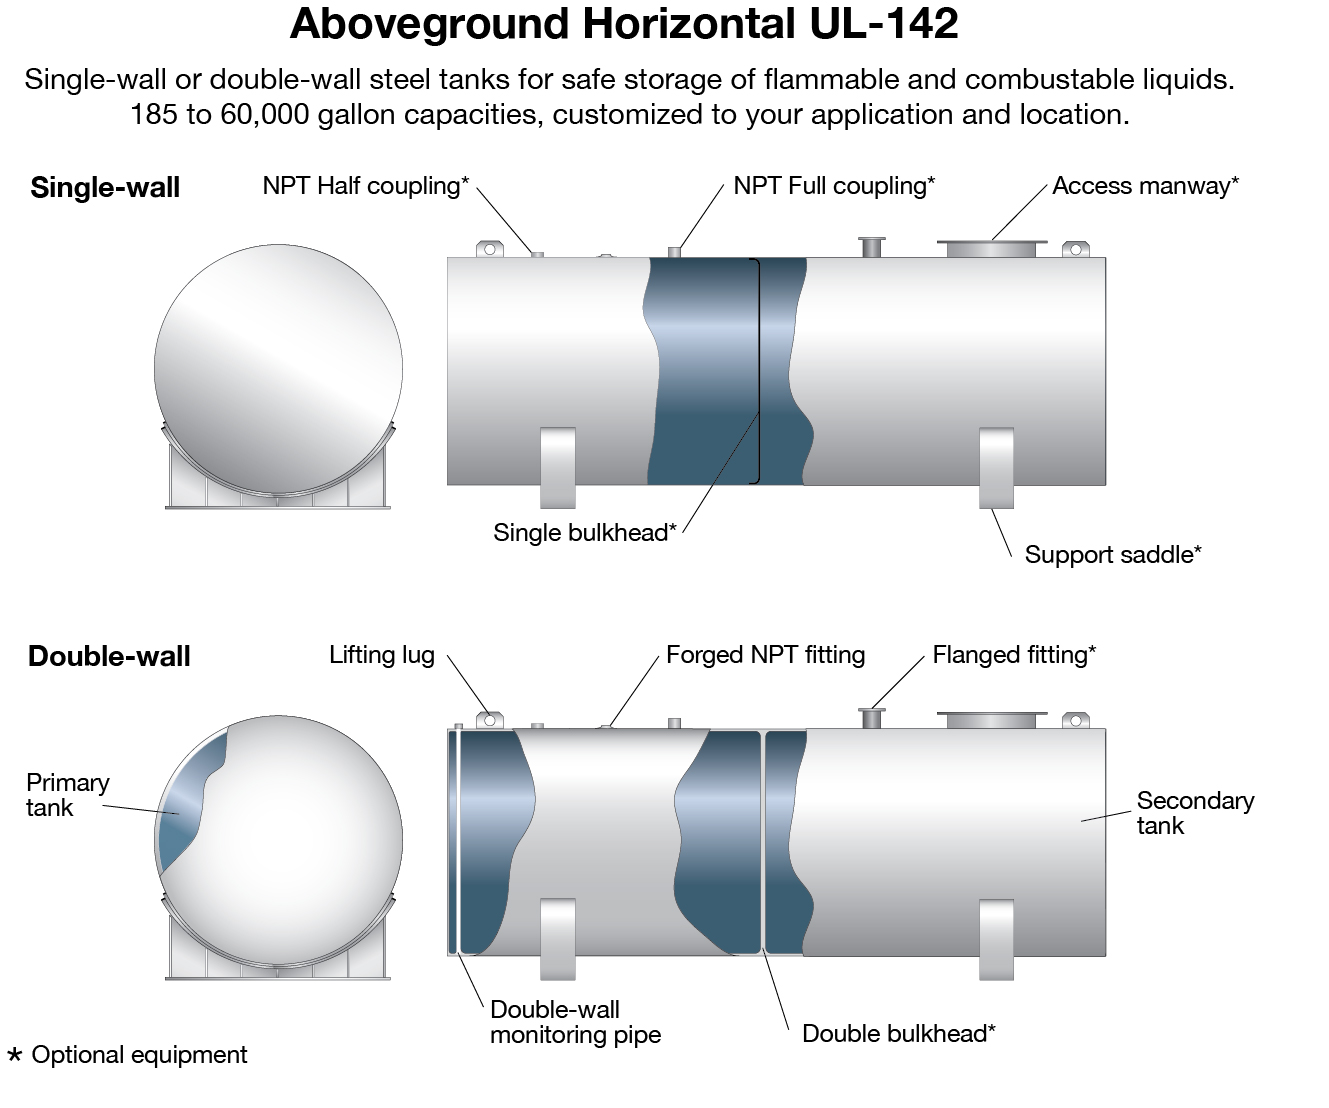 aboveground horizontal UL-142 - Highland Tank